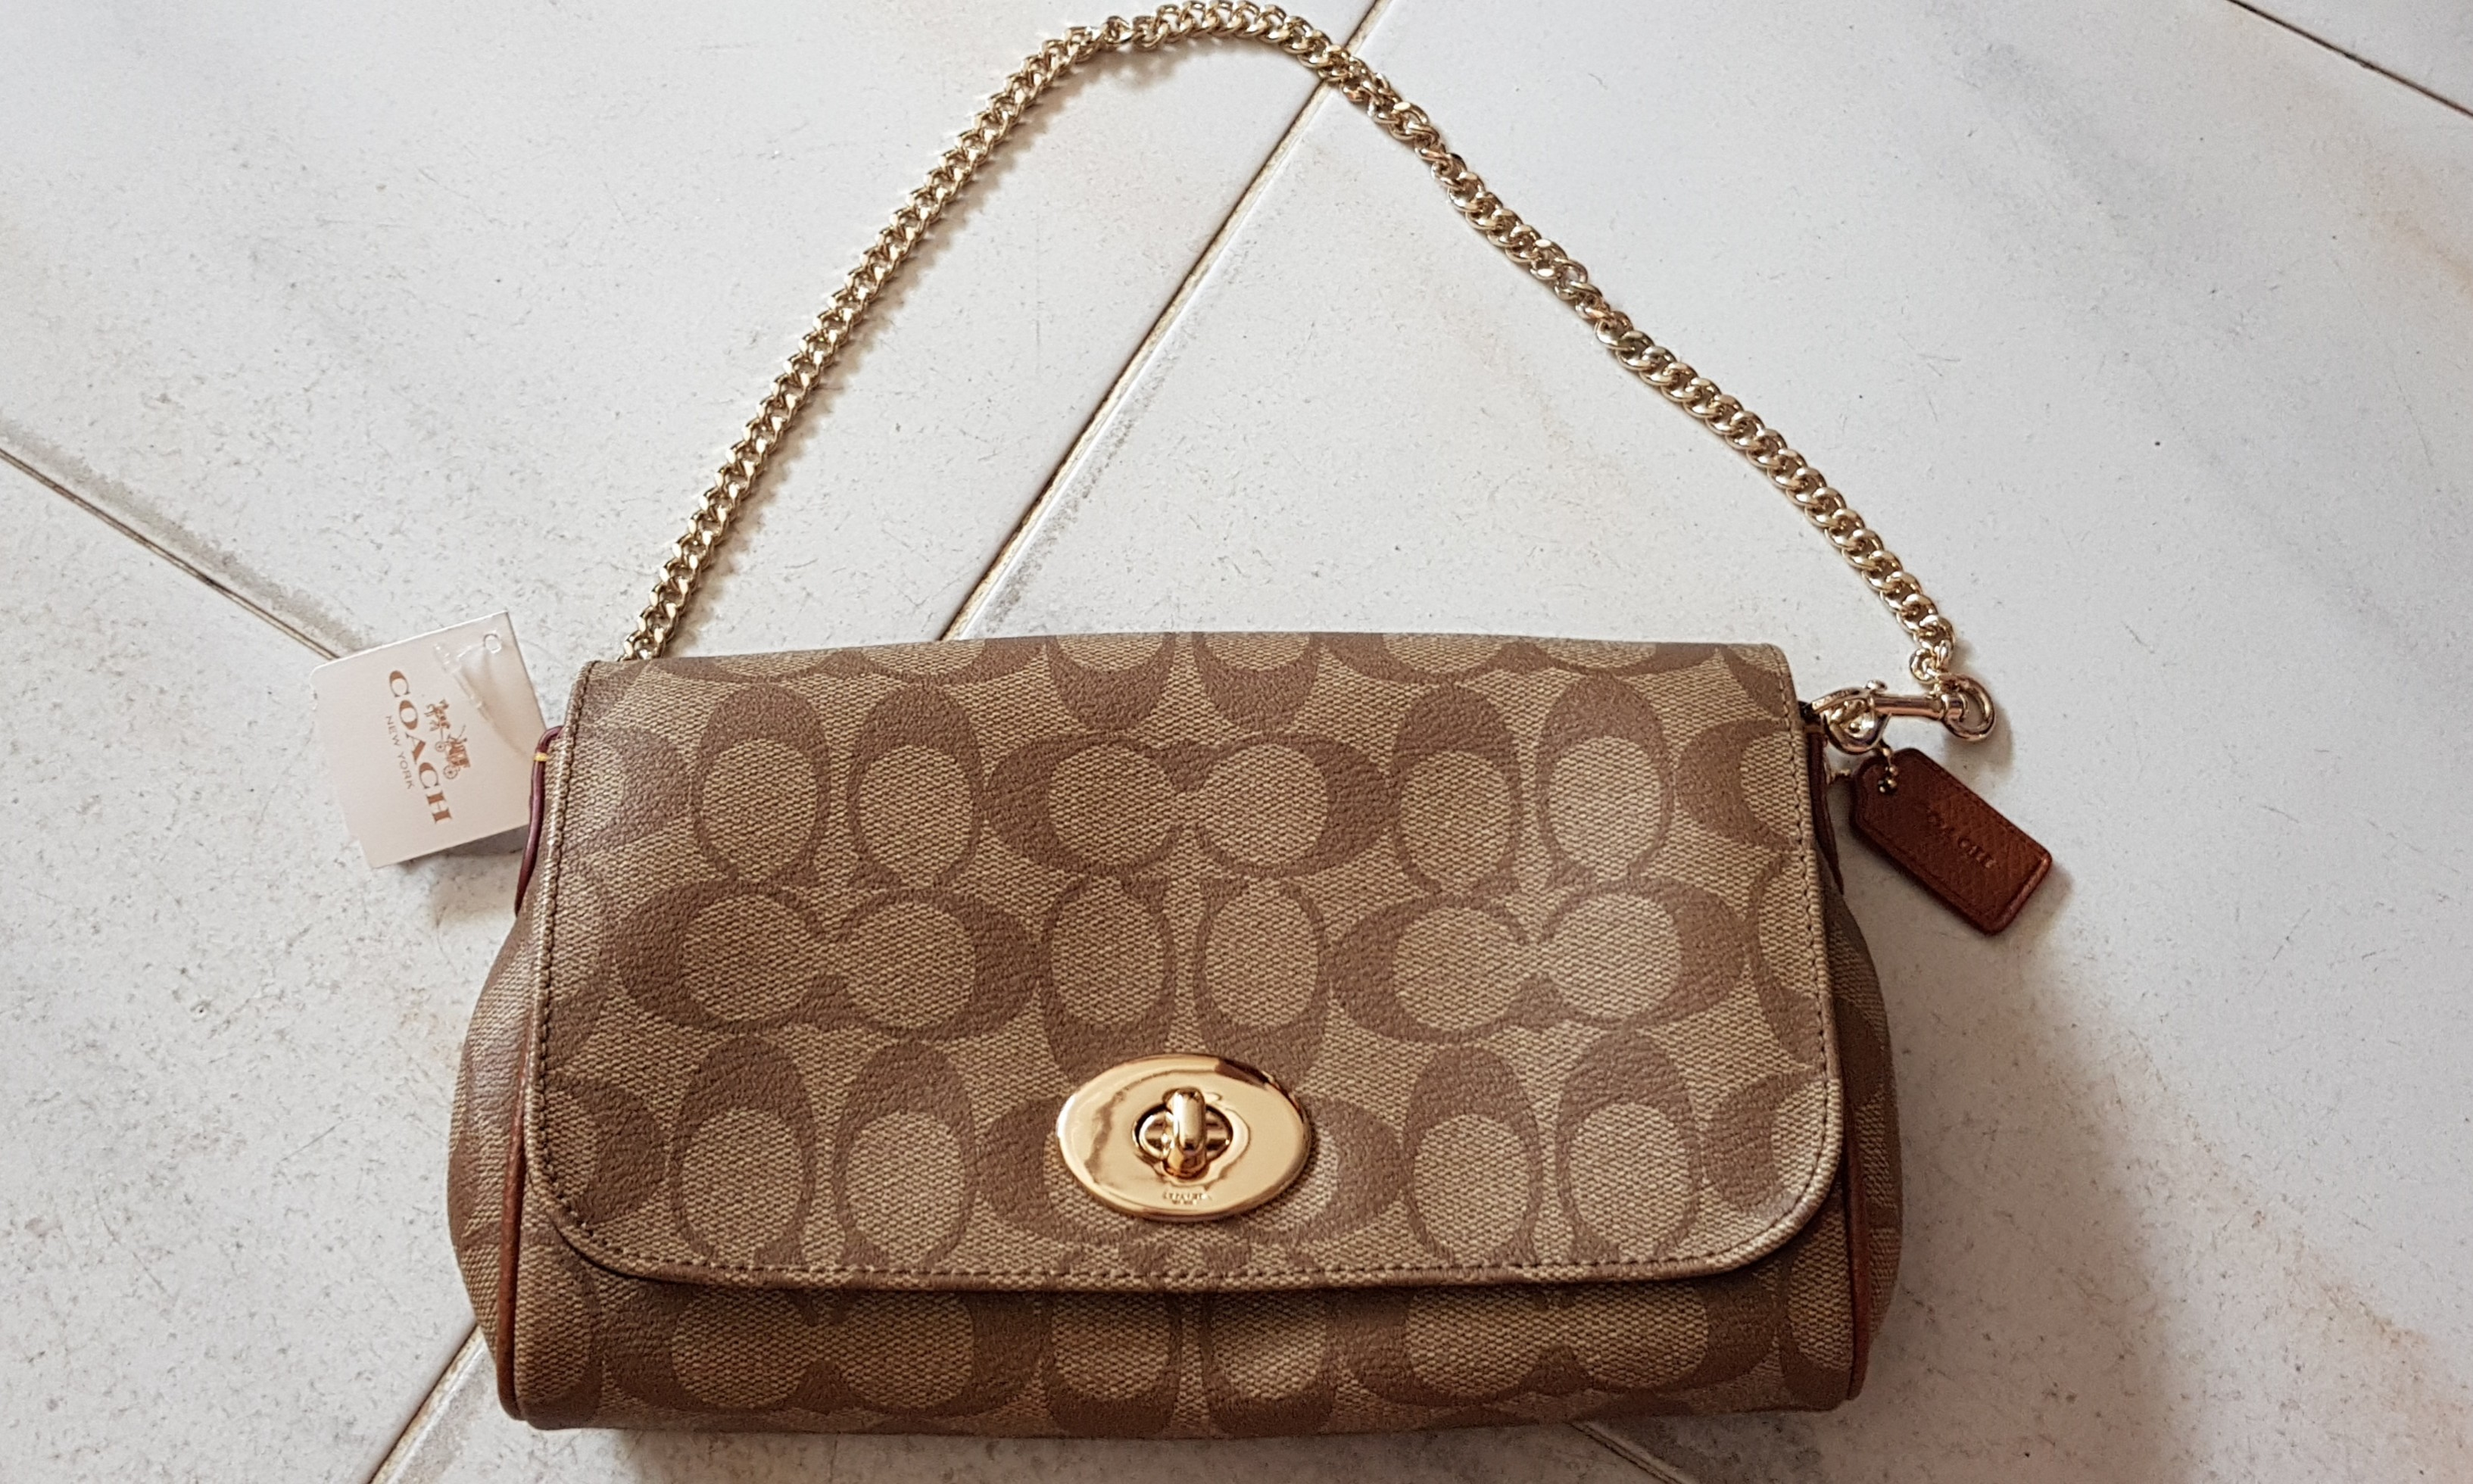 6fad316bf5a42 [BNWT] Coach Mini Ruby Crossbody In Signature Canvas Brown, Women's  Fashion, Bags & Wallets, Sling Bags on Carousell